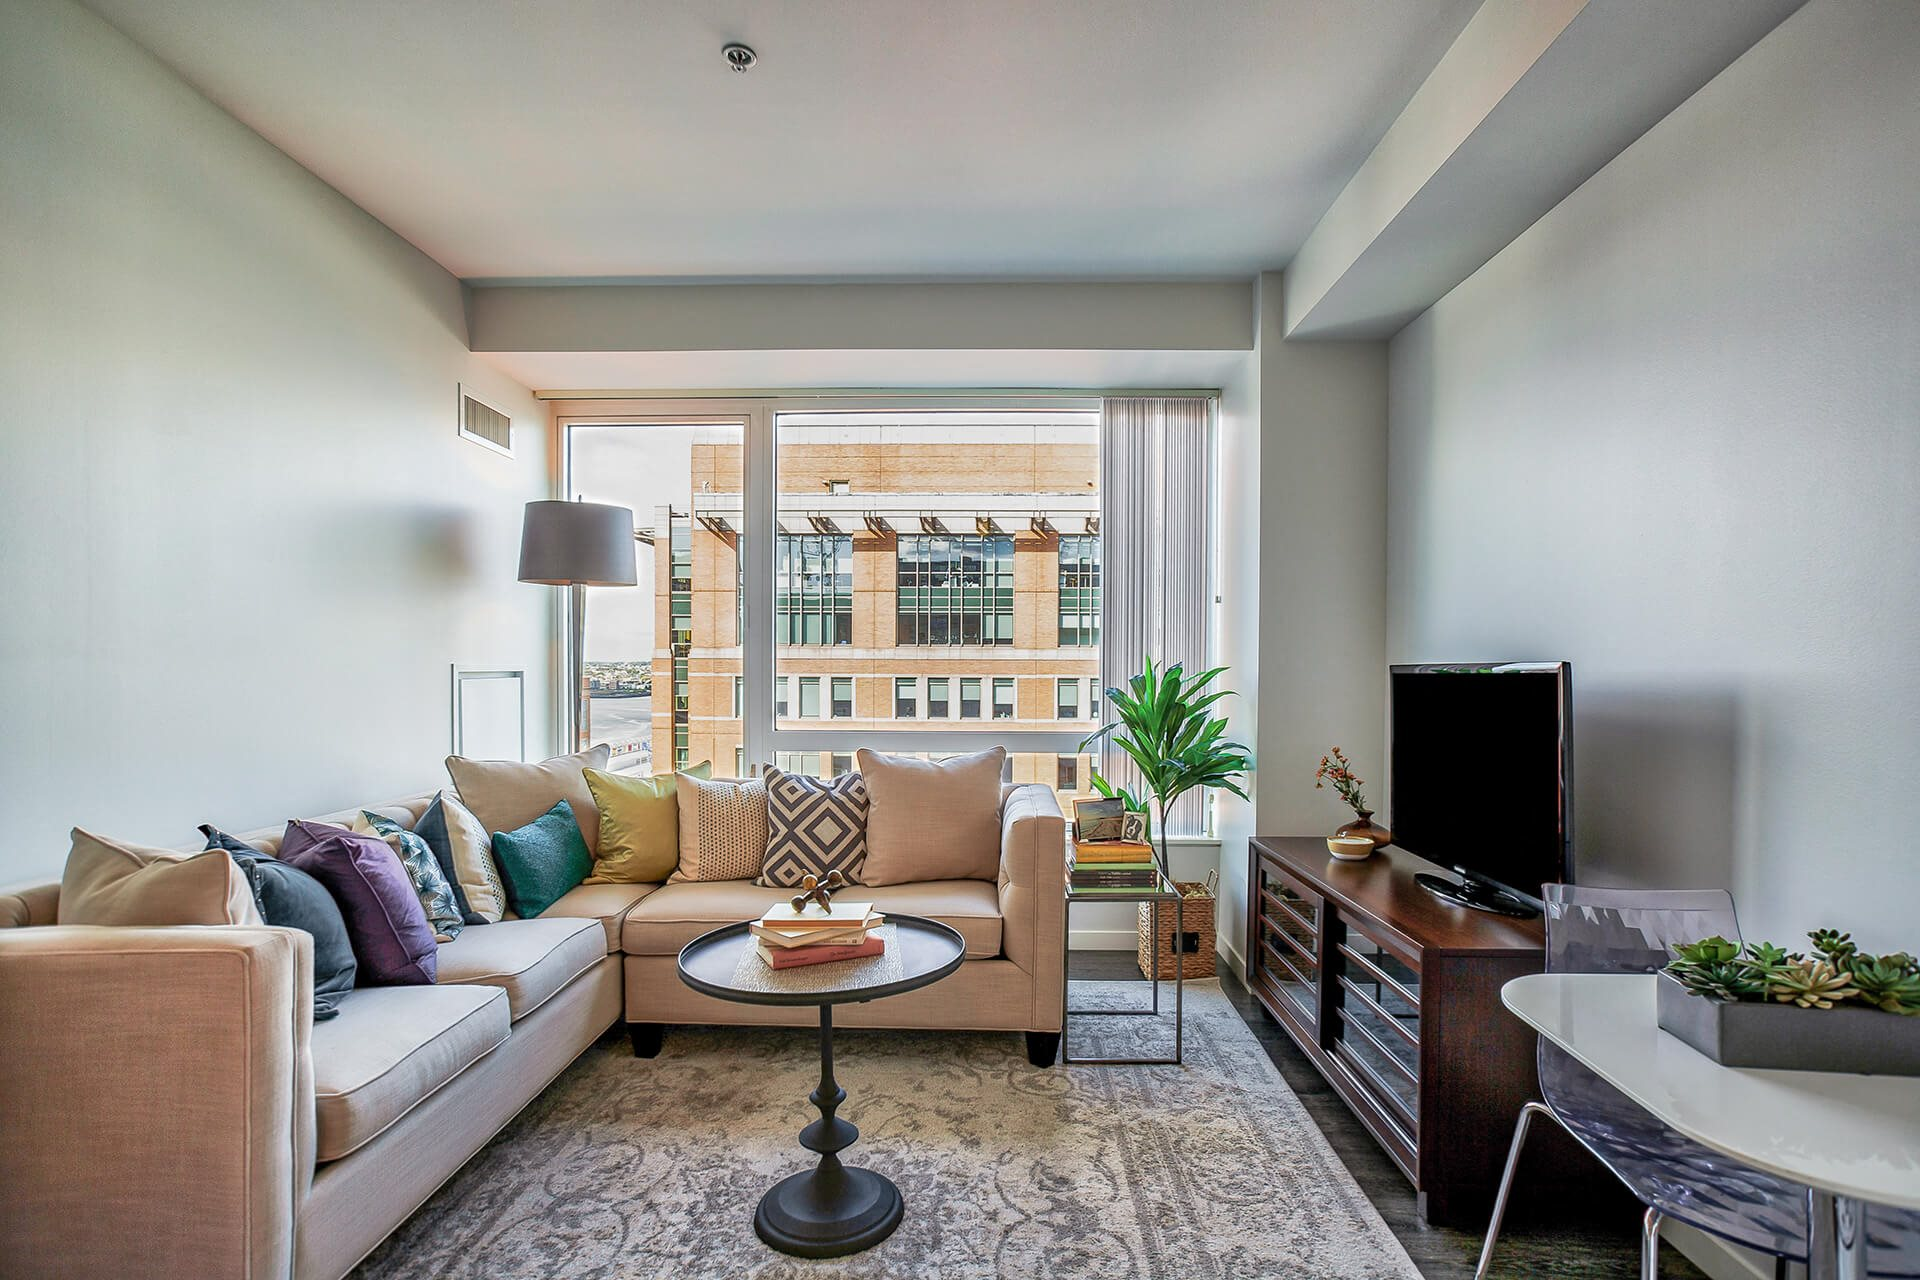 Spacious living room at Waterside Place by Windsor, 02210, MA